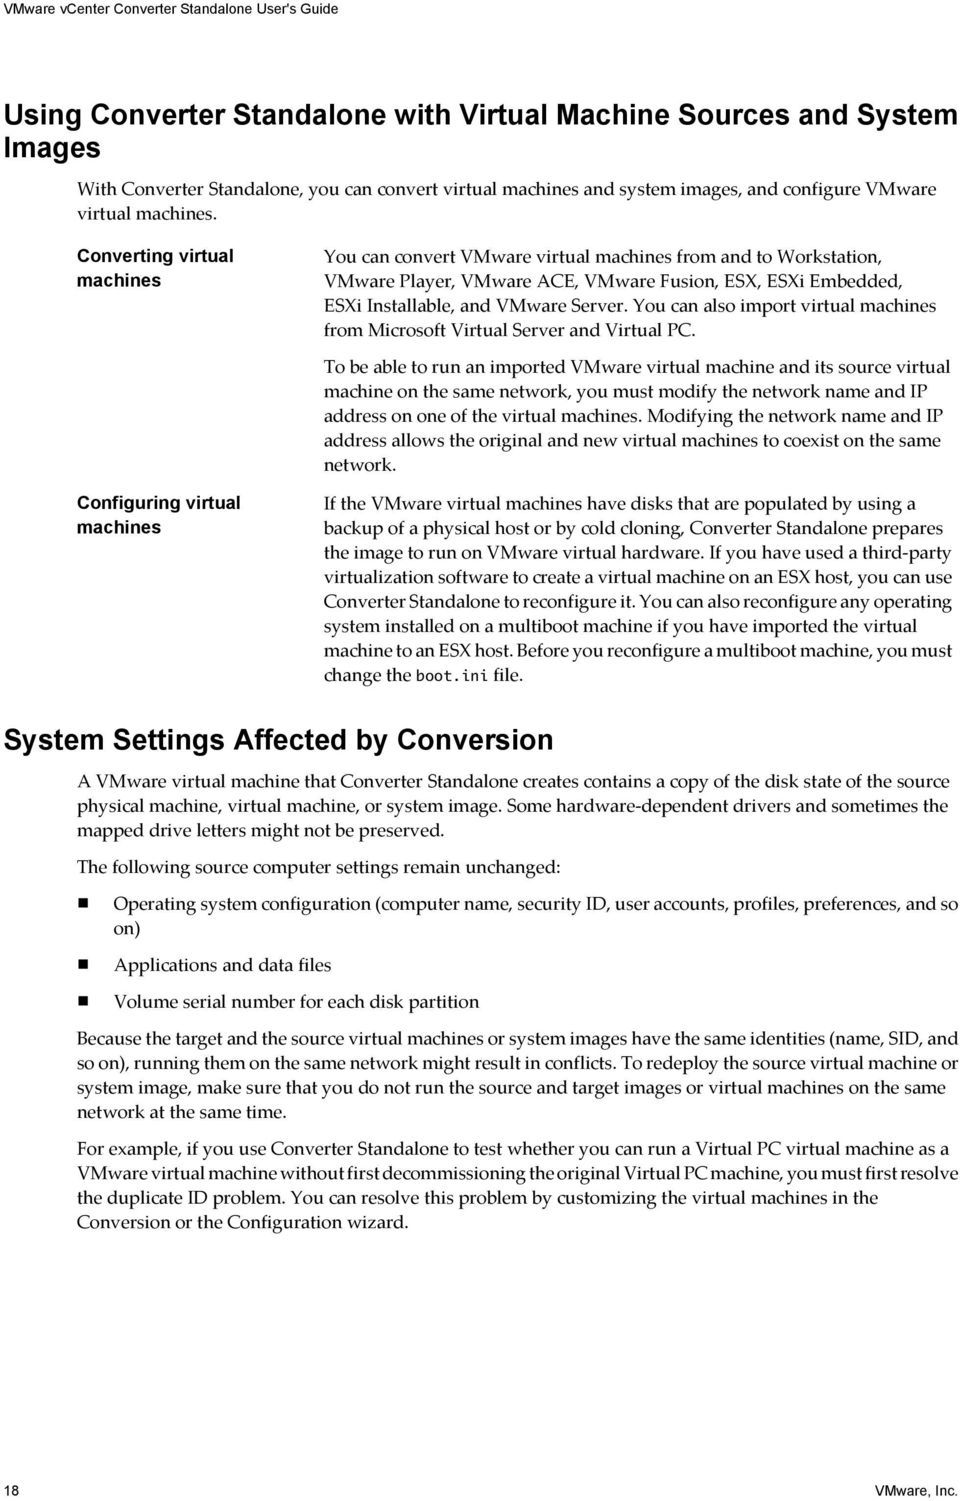 VMware vcenter Converter Standalone User's Guide - PDF